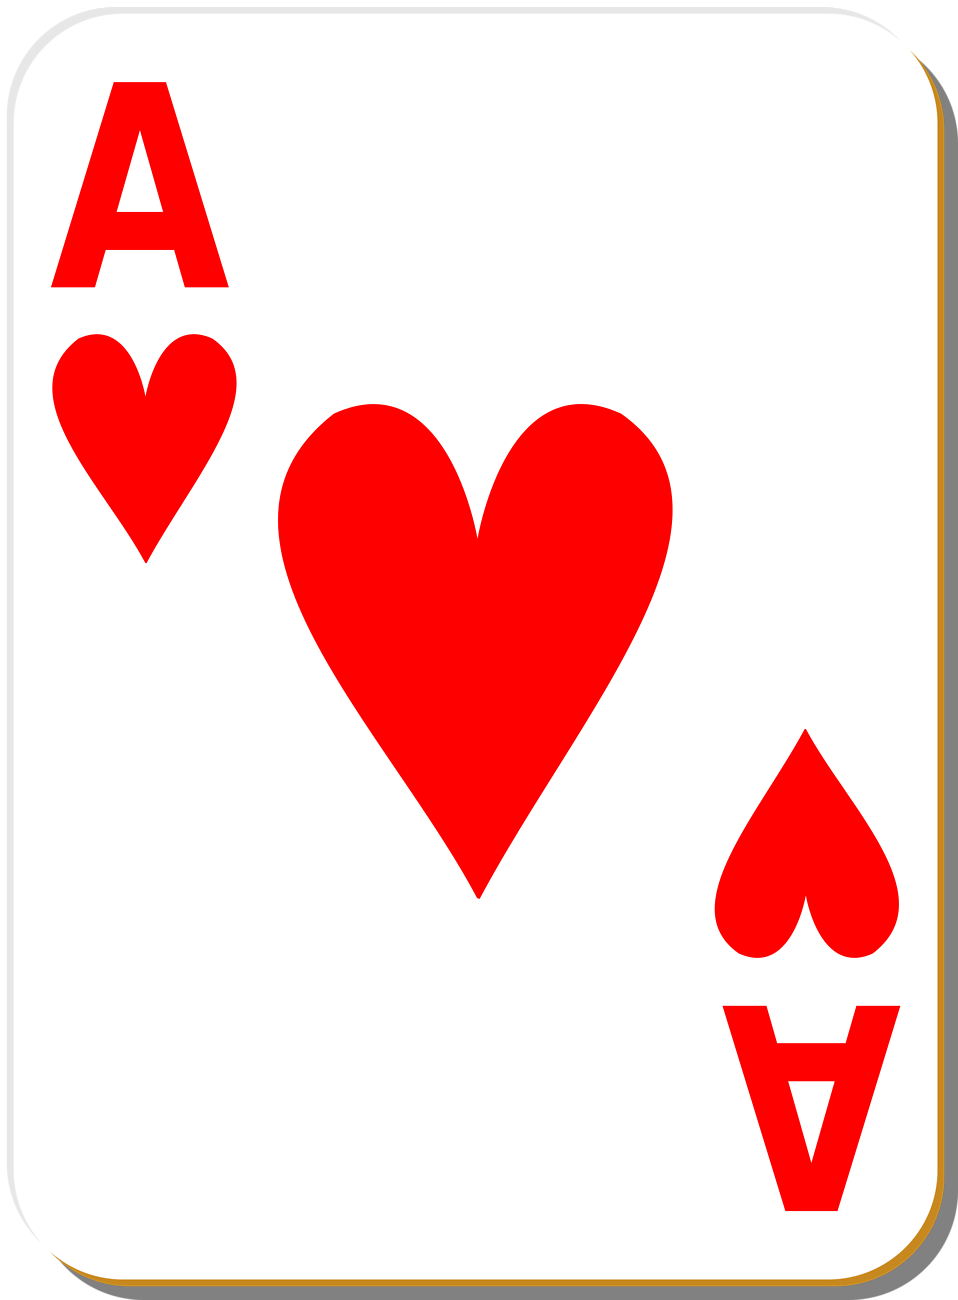 ace heart playing card clip art budget cuts pinterest heart rh pinterest com playing cards clipart free playing cards clipart free